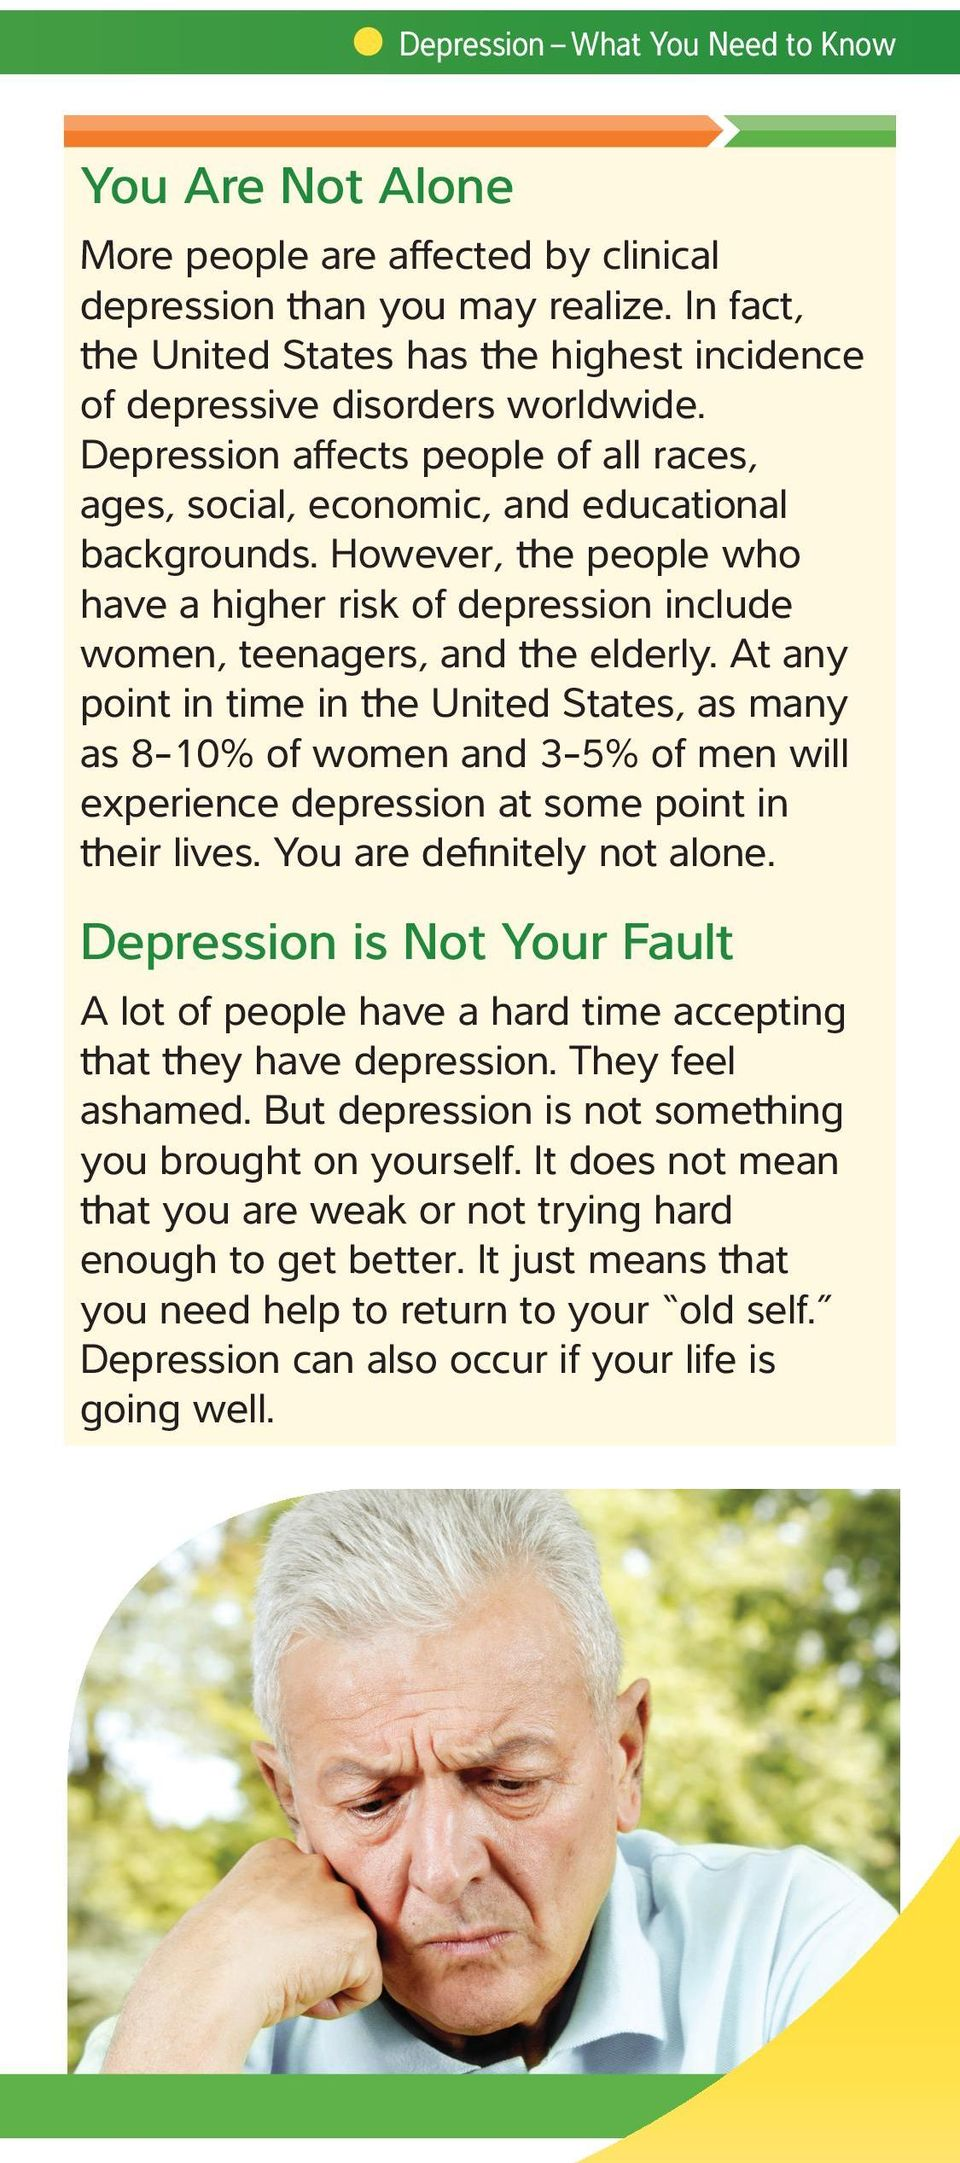 However, the people who have a higher risk of depression include women, teenagers, and the elderly.